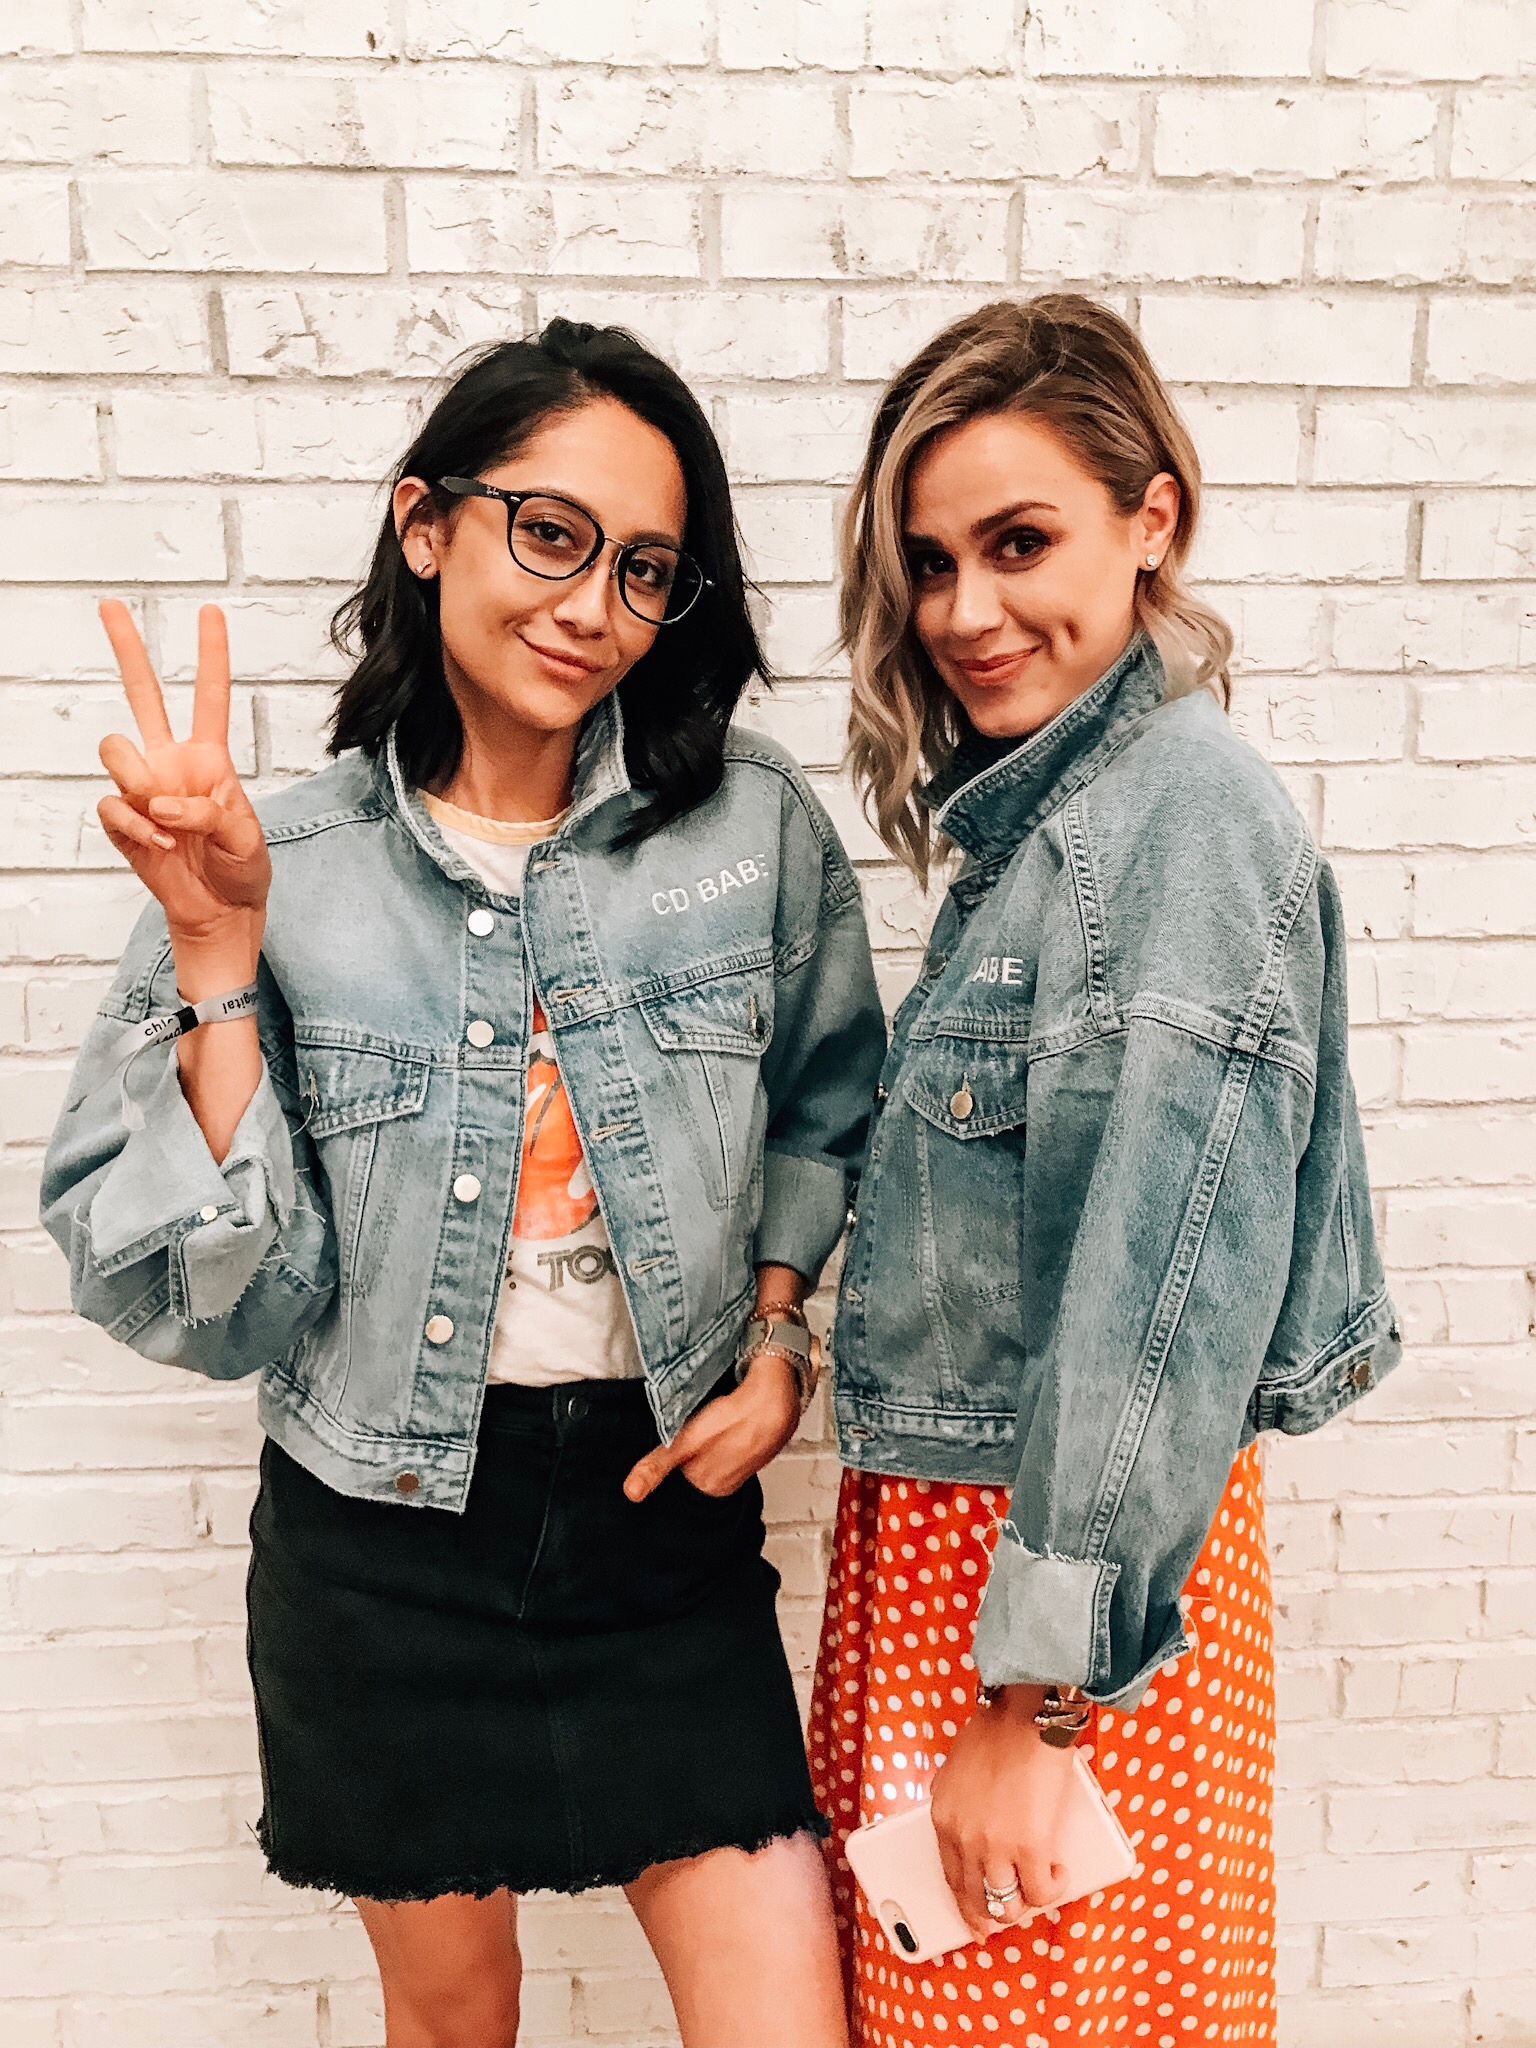 Bloggers Lilly Beltran & Elly Brown at the Chloe Digital World Tour in Dallas, TX wearing crop denim jackets.